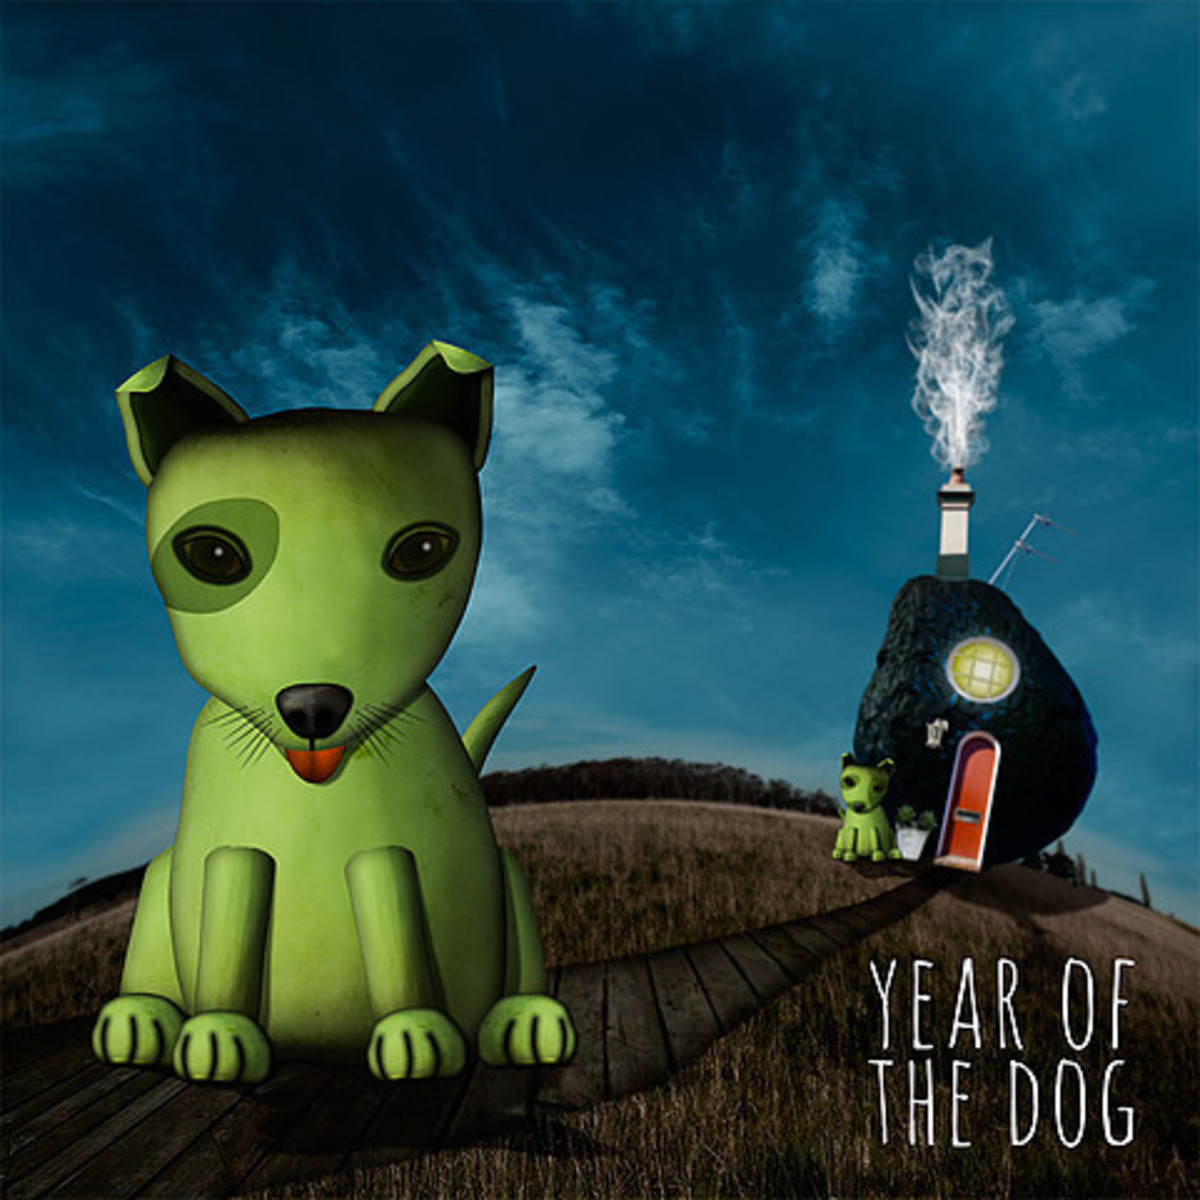 Carrie Webster - The Year of the Dog